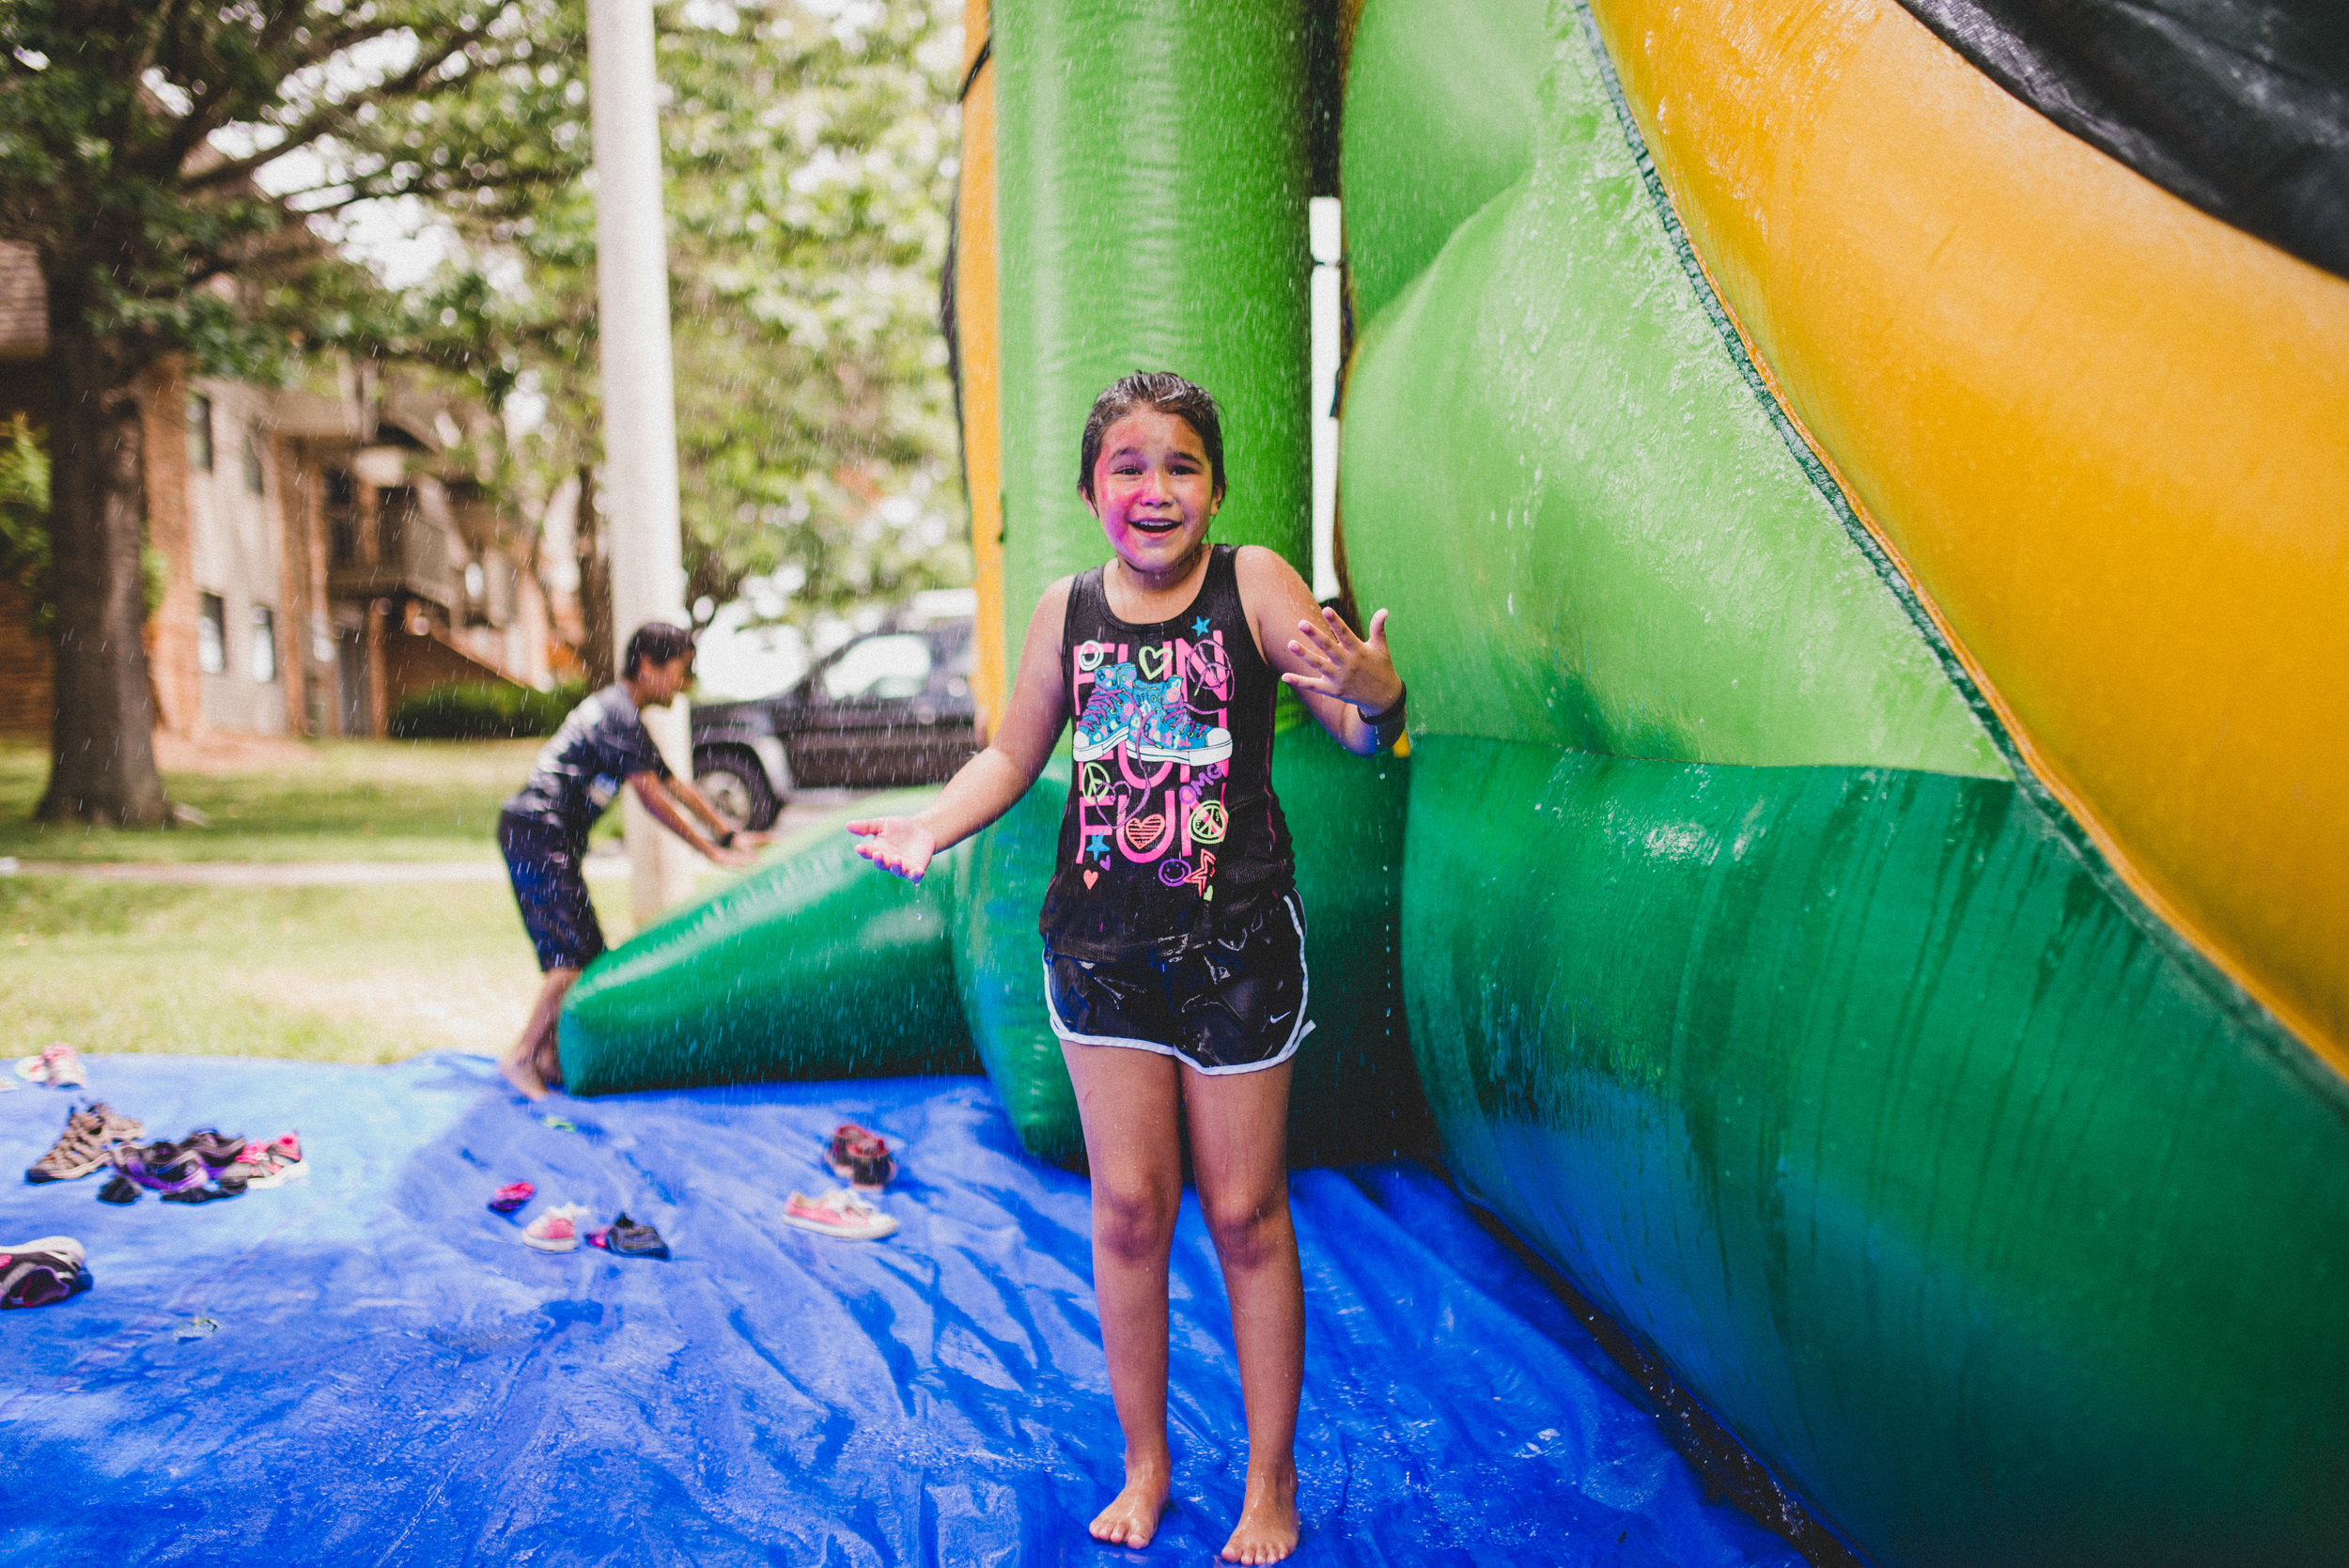 Development is inevitable. What a child develops into is another question. With adults who care, development can be steered to promote healthy functioning children who are not stunted by idle summers and unsupervised curiosity. She is neither idle nor unsupervised, and she looks pretty darn happy about that.